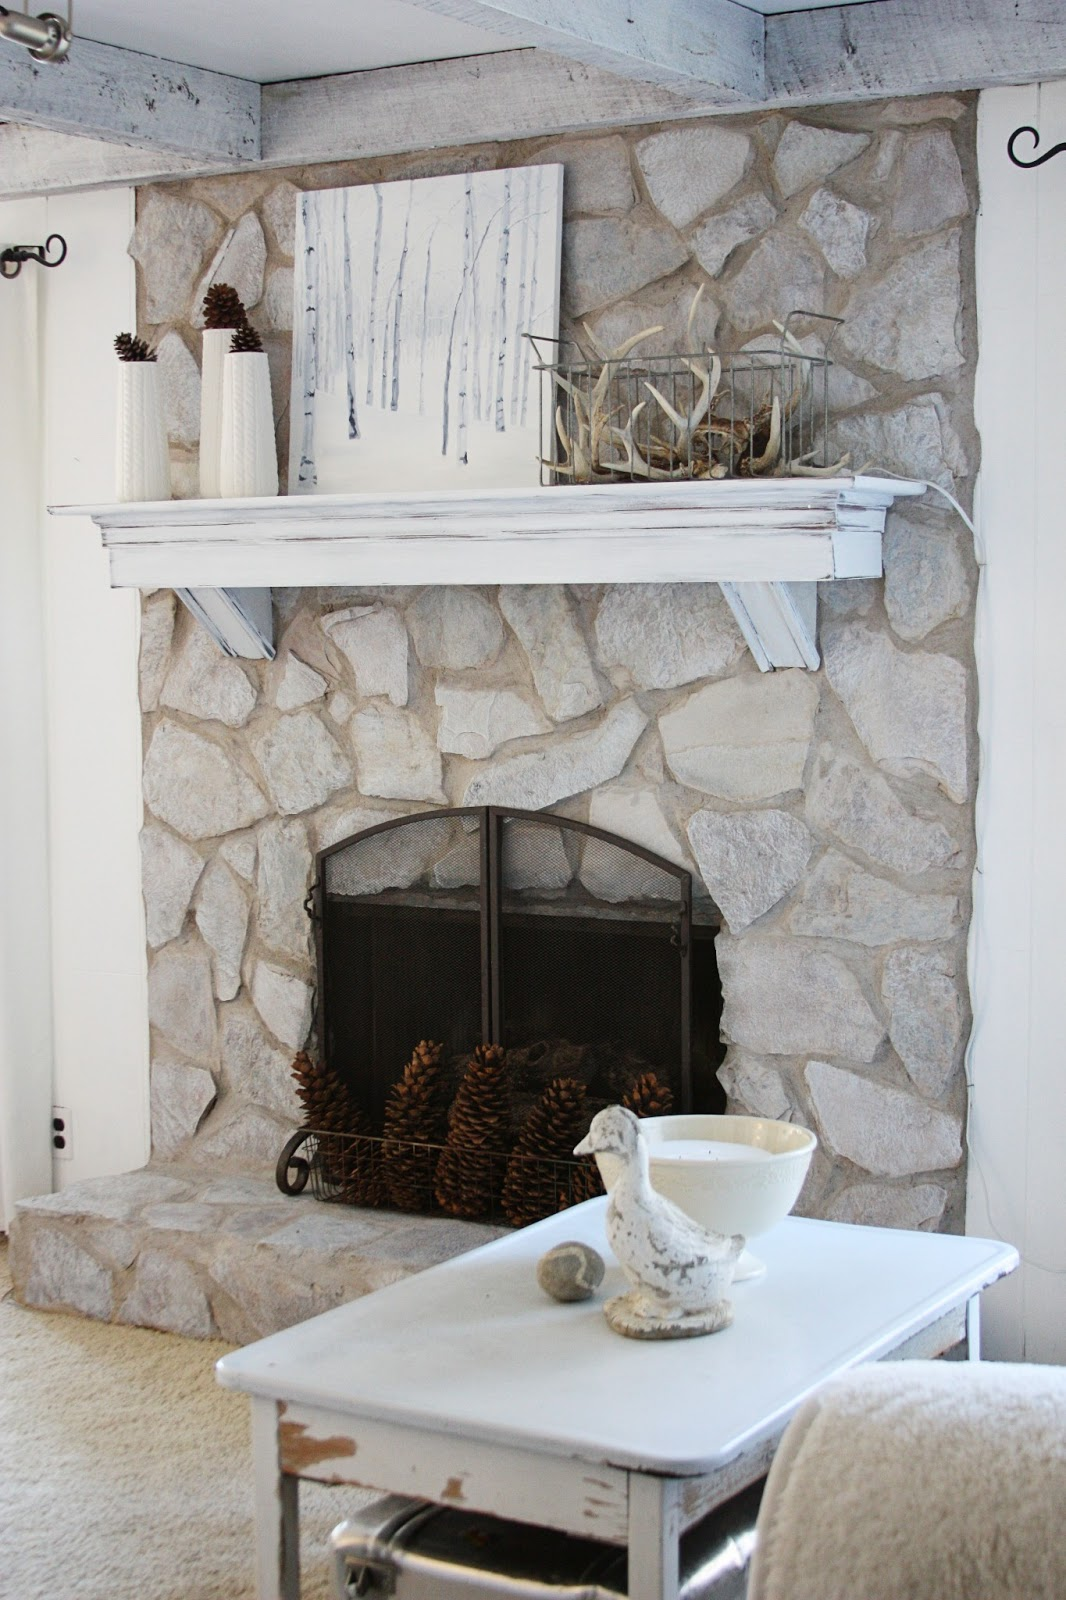 Erin S Art And Gardens Painted Stone Fireplace Before And